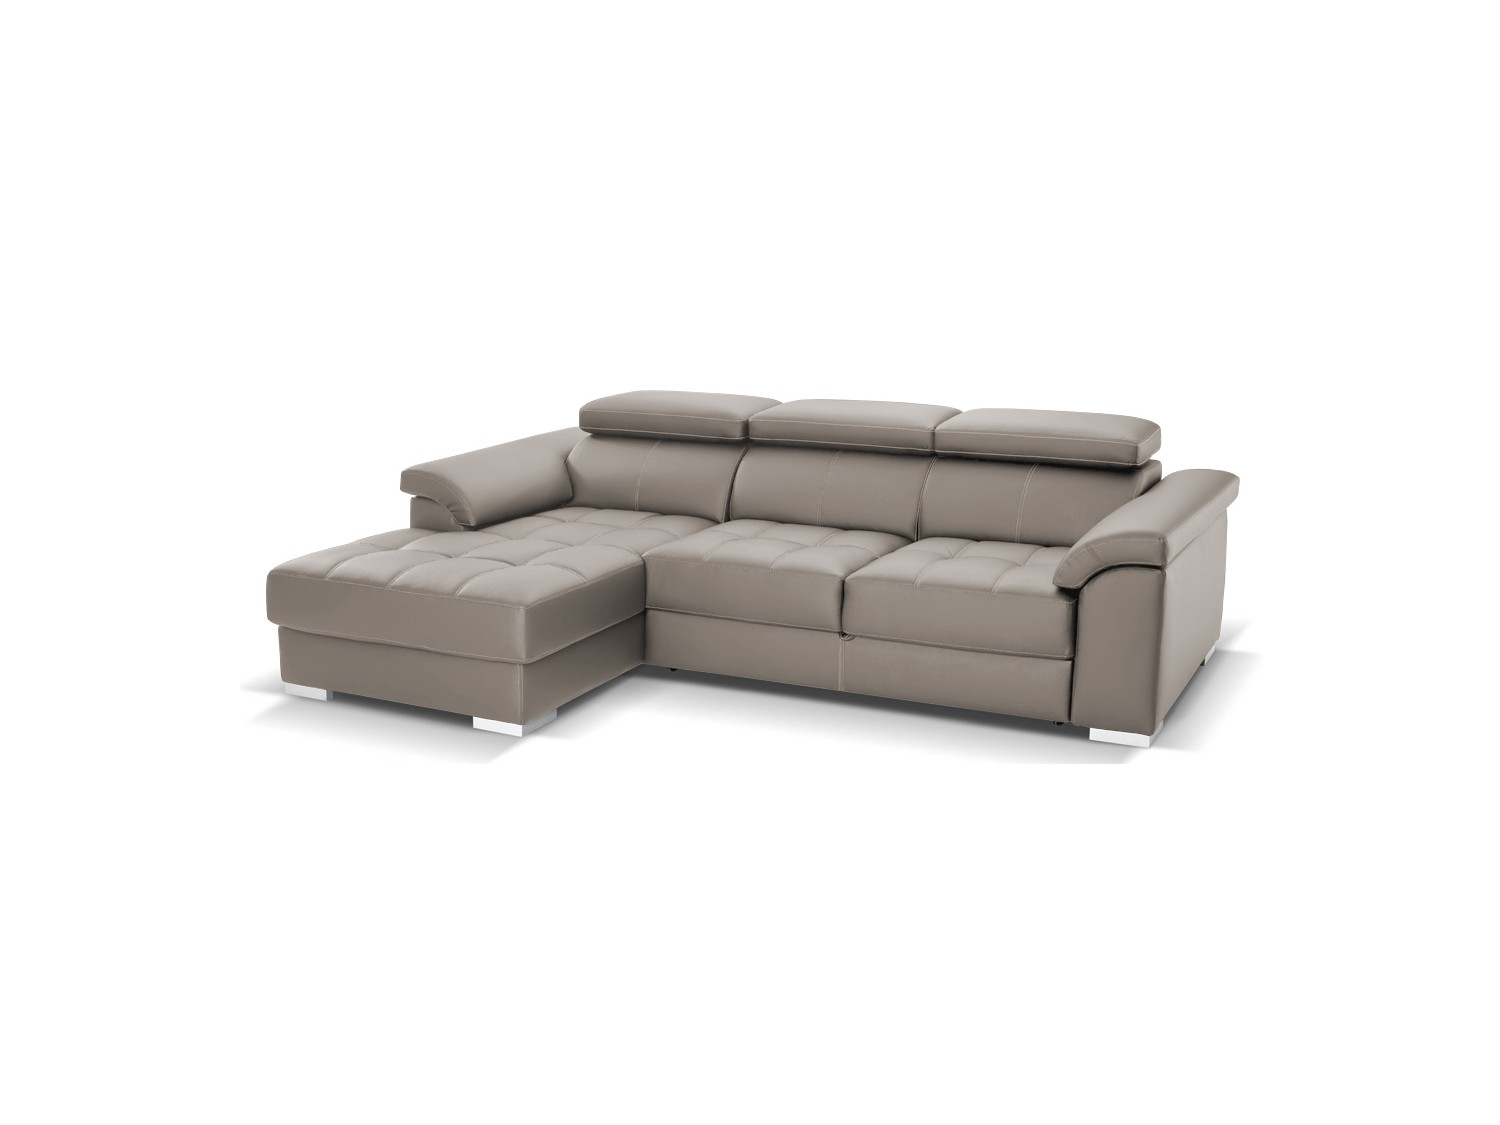 Canap d angle convertible cuir royal sofa id e de for Monsieur meuble canape d angle cuir